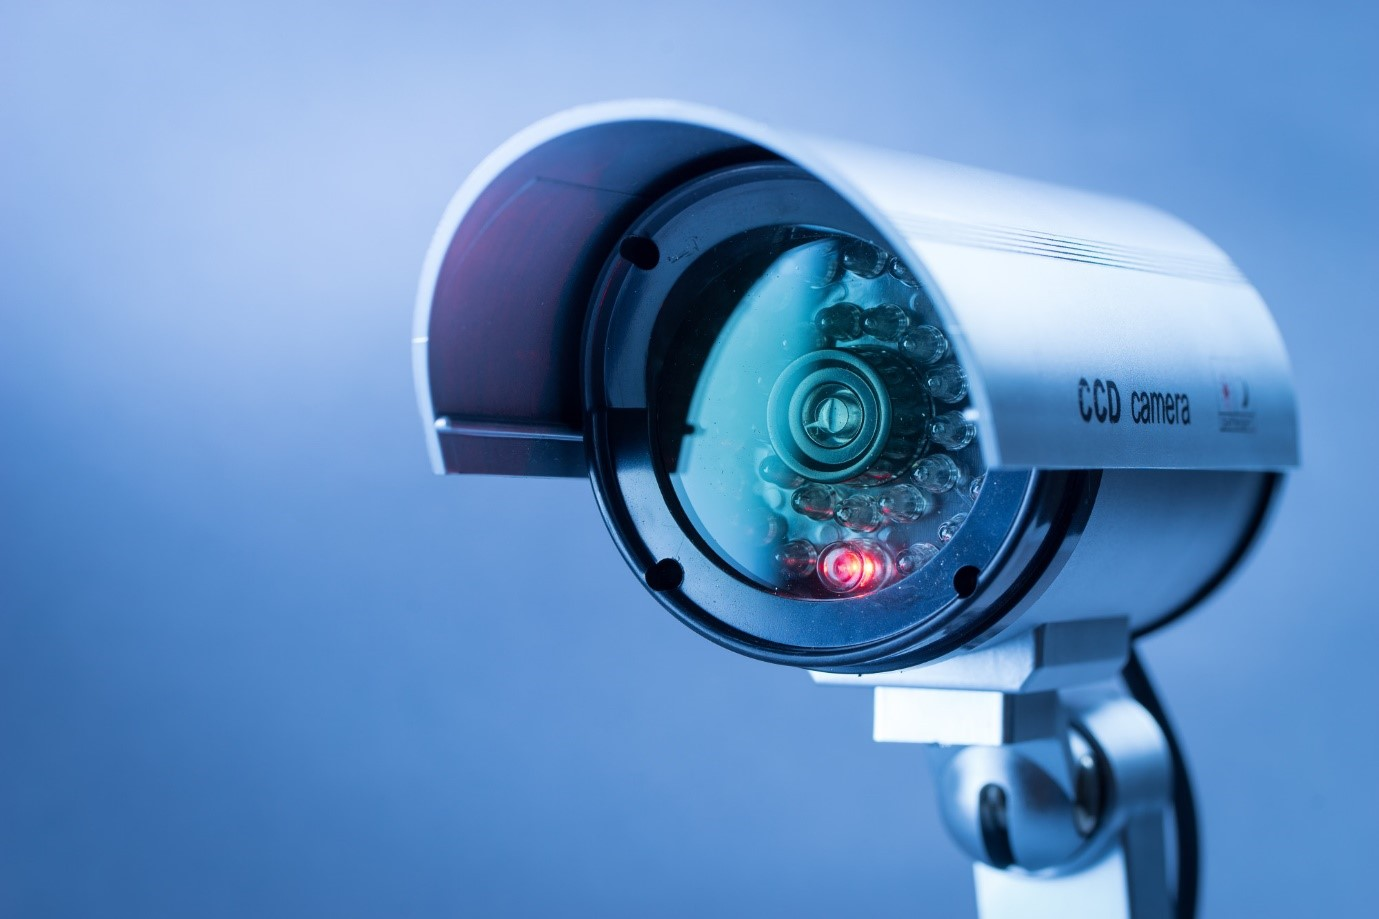 image - Business Security: The Best Ways to Protect Your Building